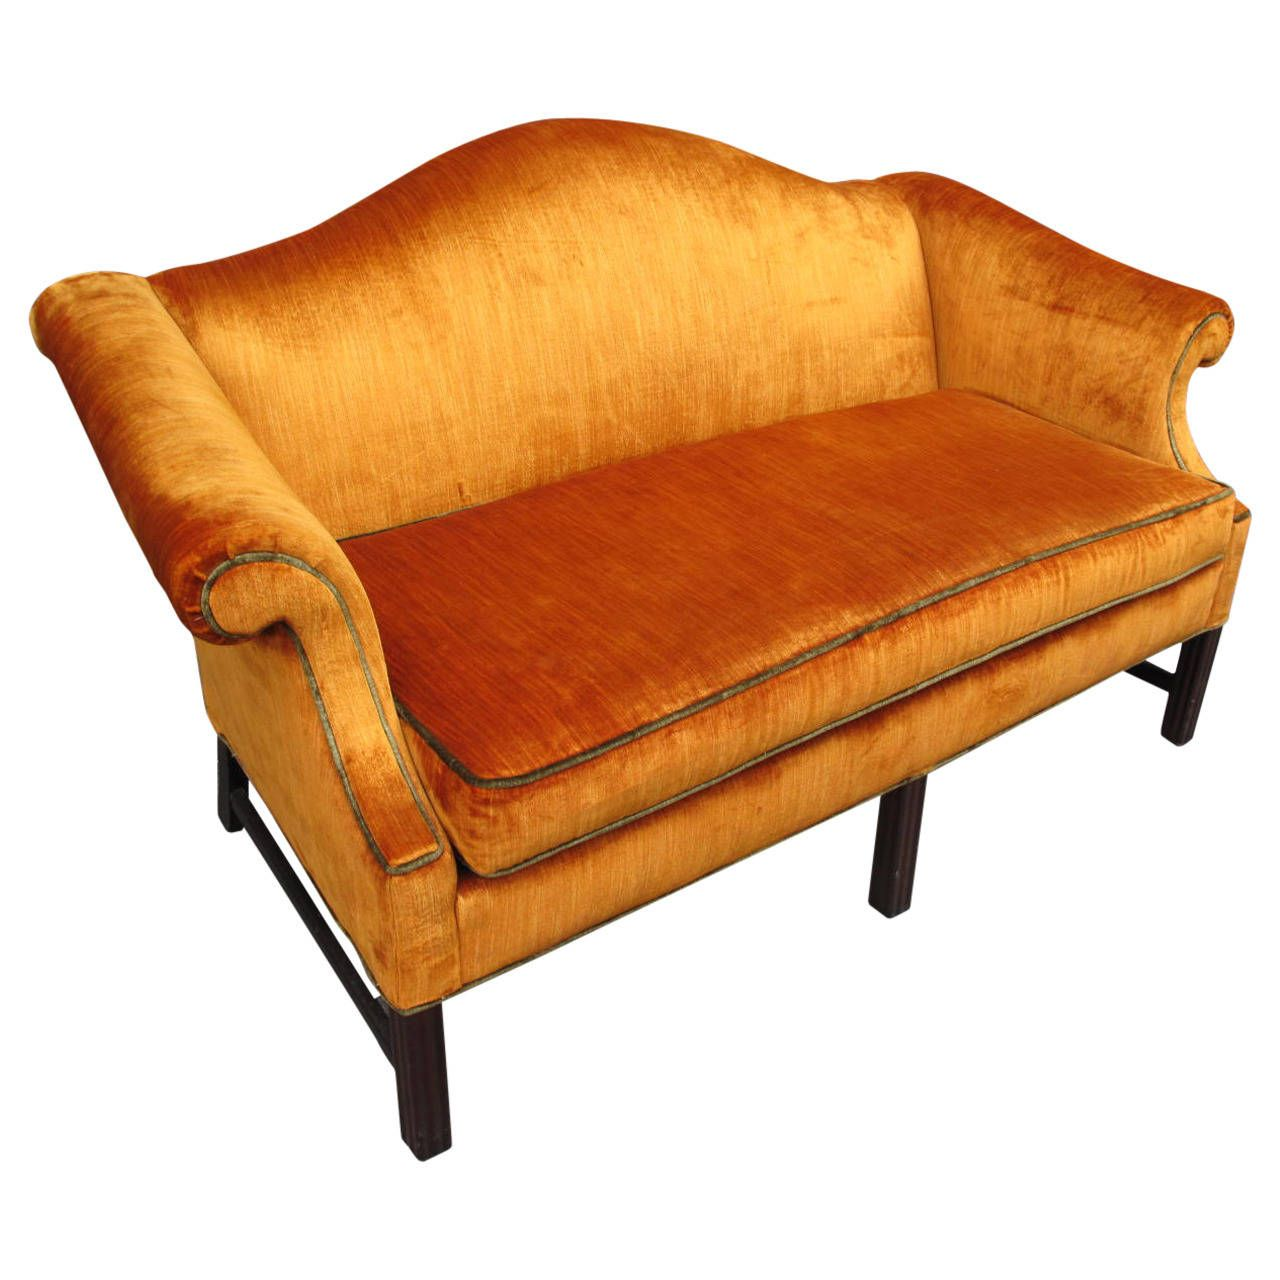 Panne Velvet Upholstered Sofa From A Unique Collection Of Antique And Modern Sofas At Https Www 1stdibs Com Furniture Seating S Vintage Sofa Sofa Upholster